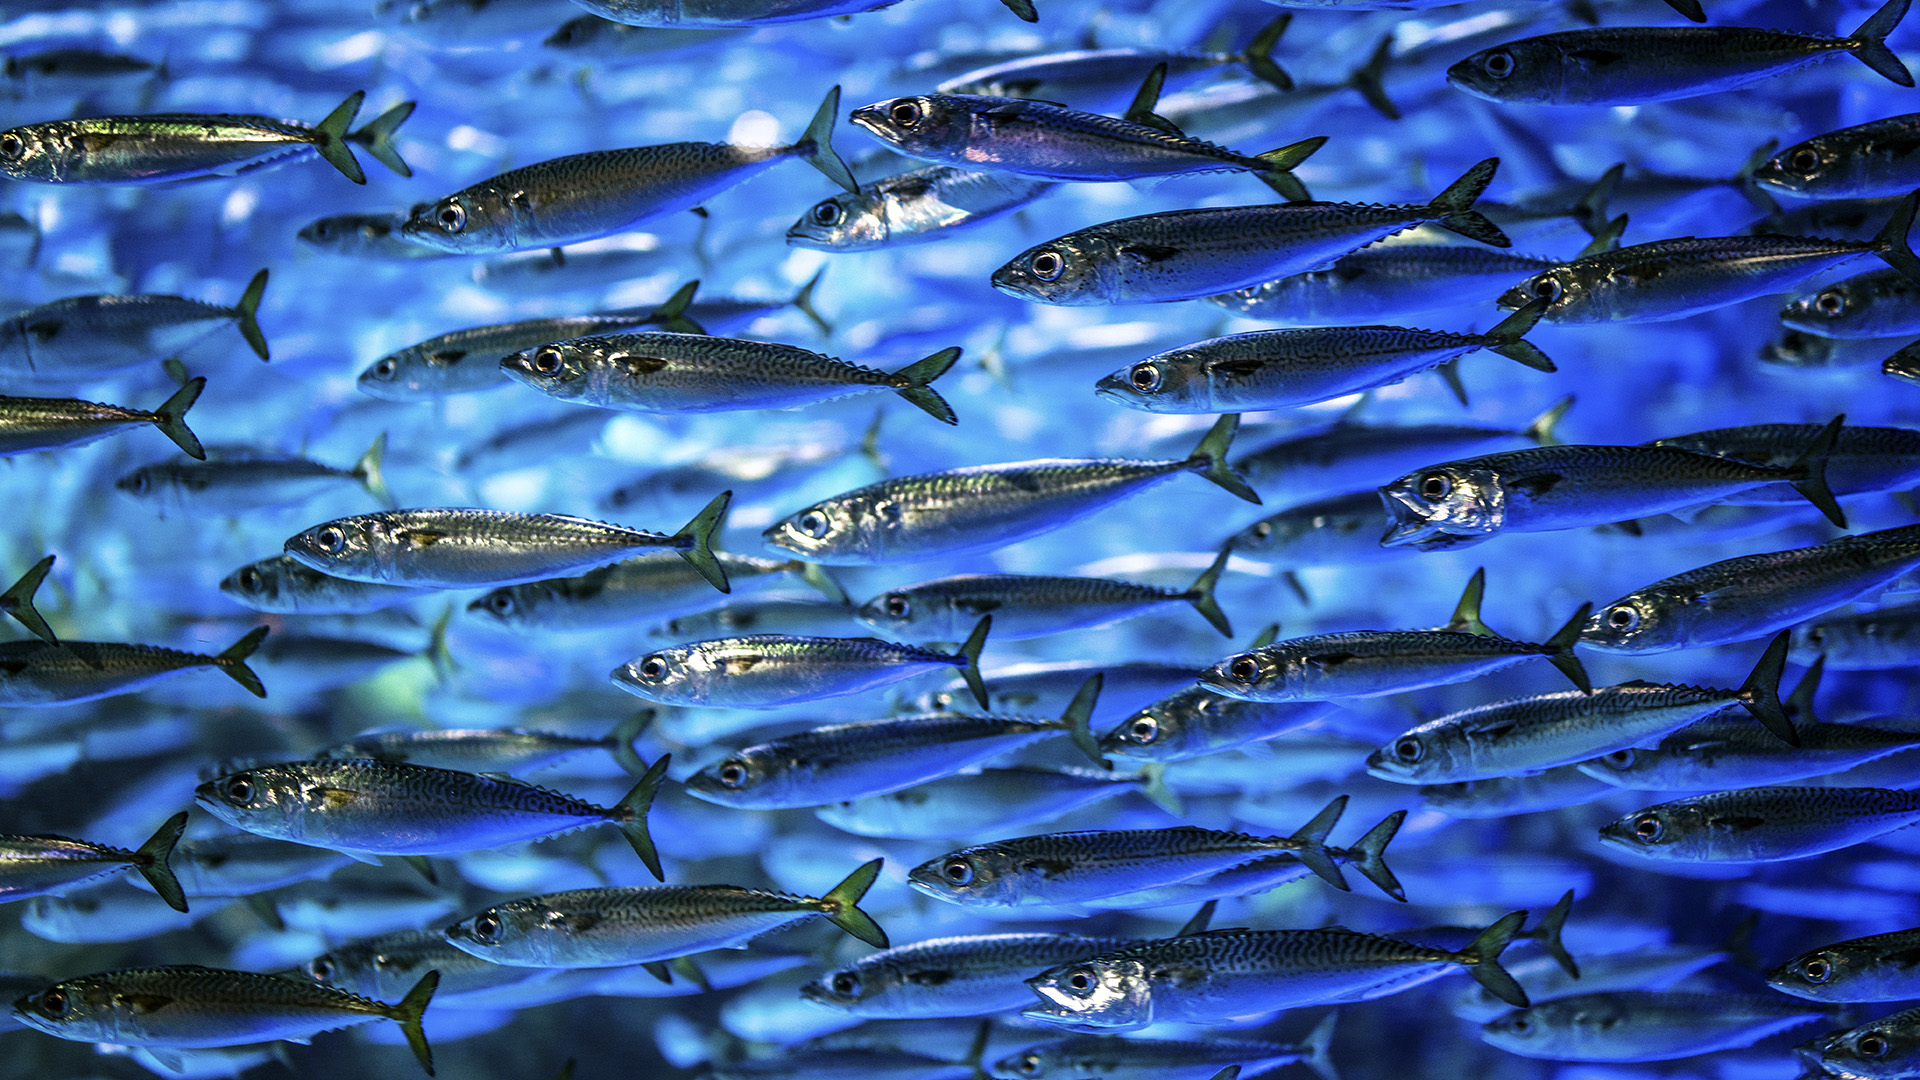 Climate Change Could Kill Off Fish Species: Study